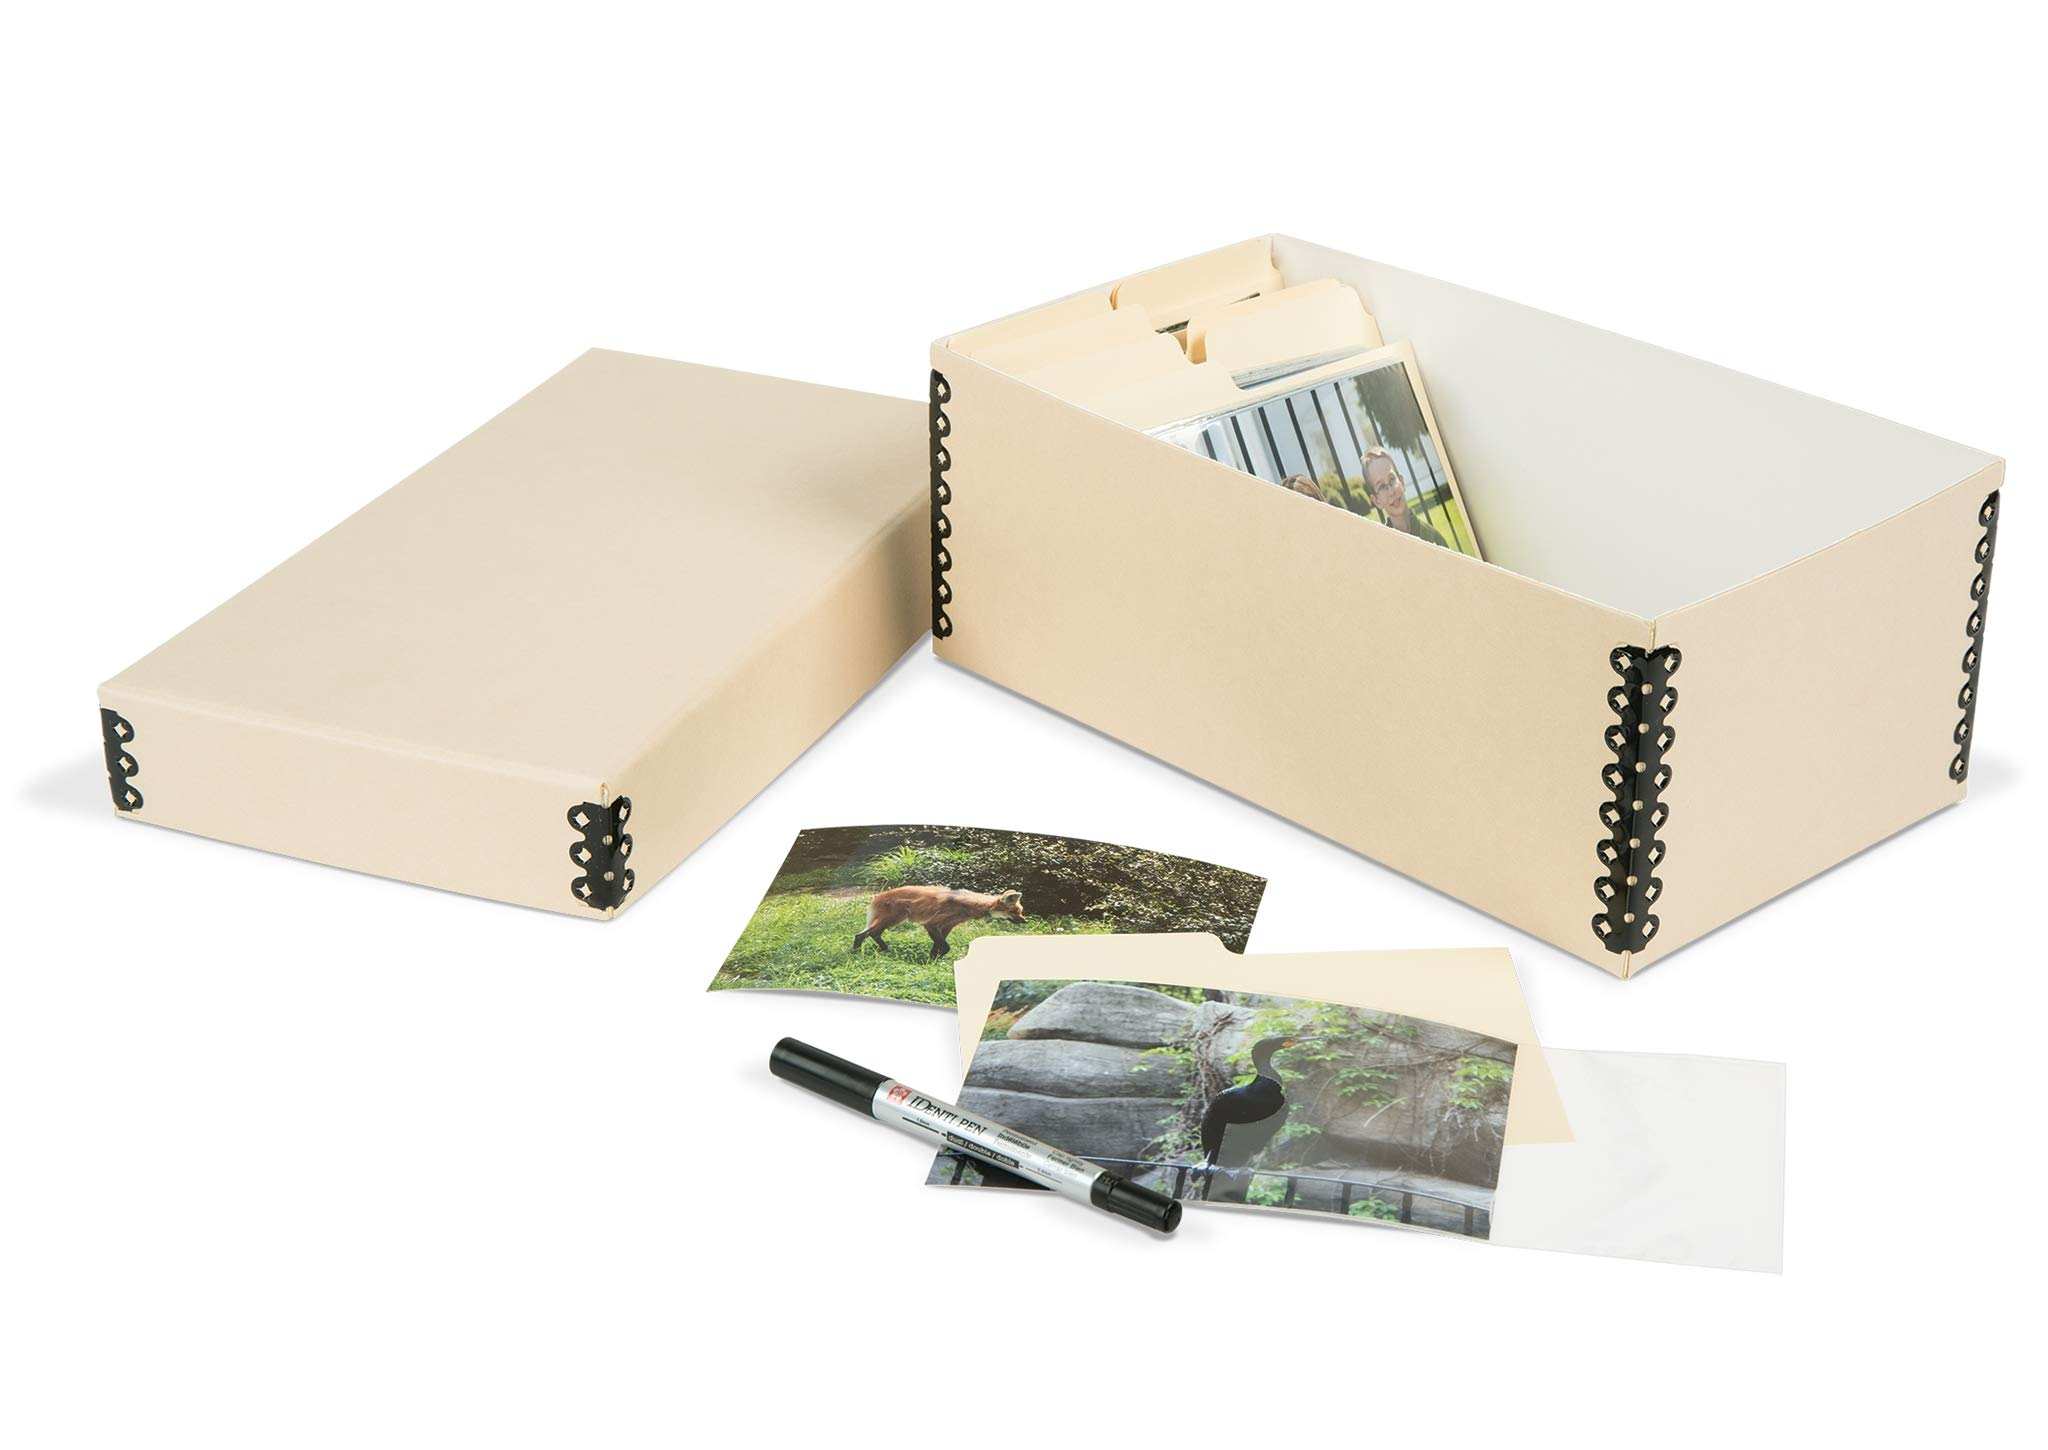 Gaylord Archival Shoebox-Style Photo Storage Kit by Gaylord Archival